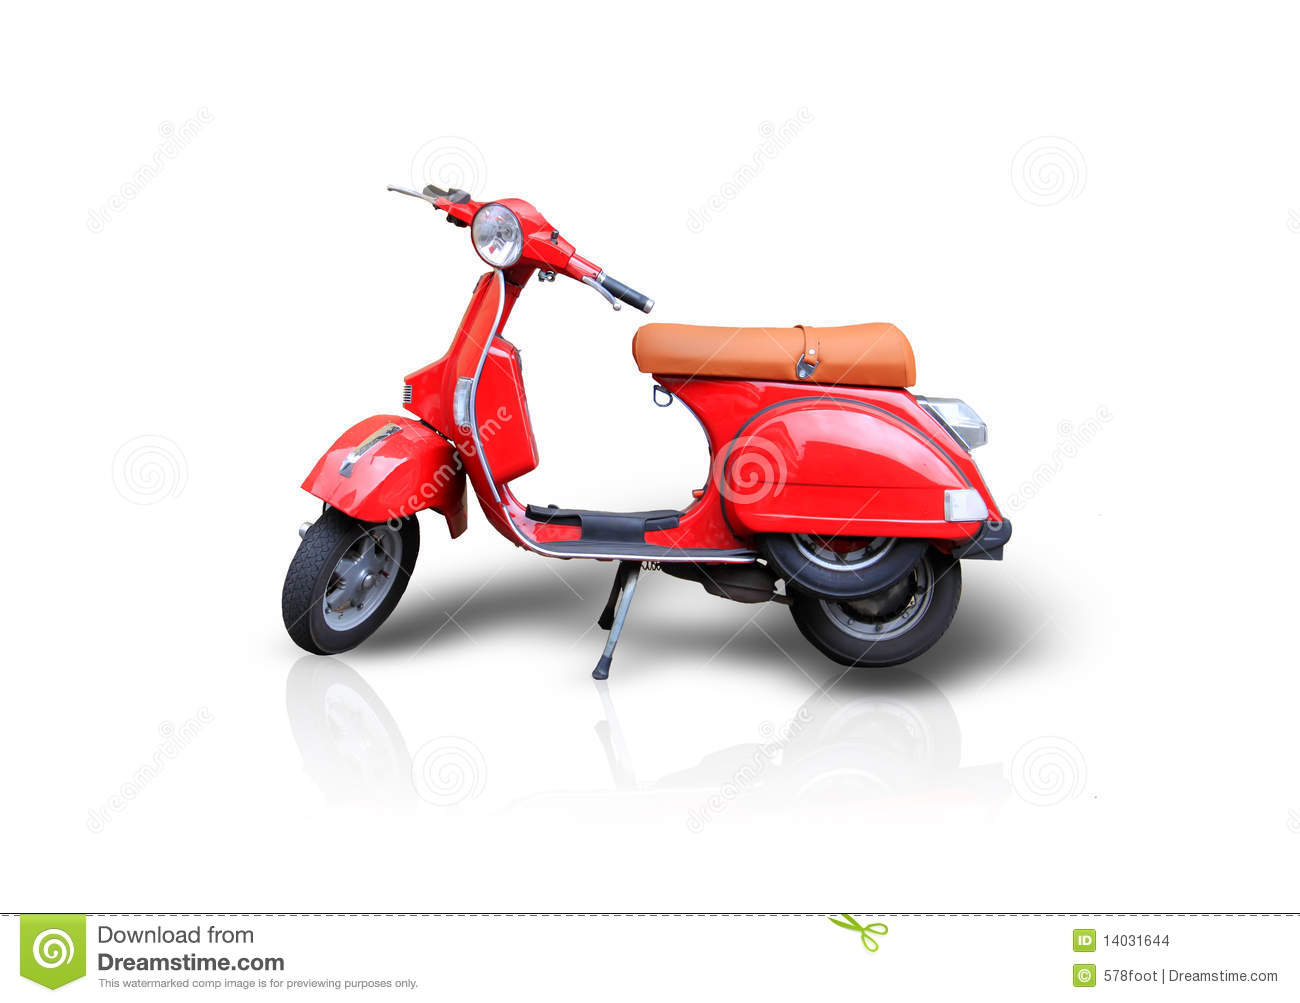 Rode autoped